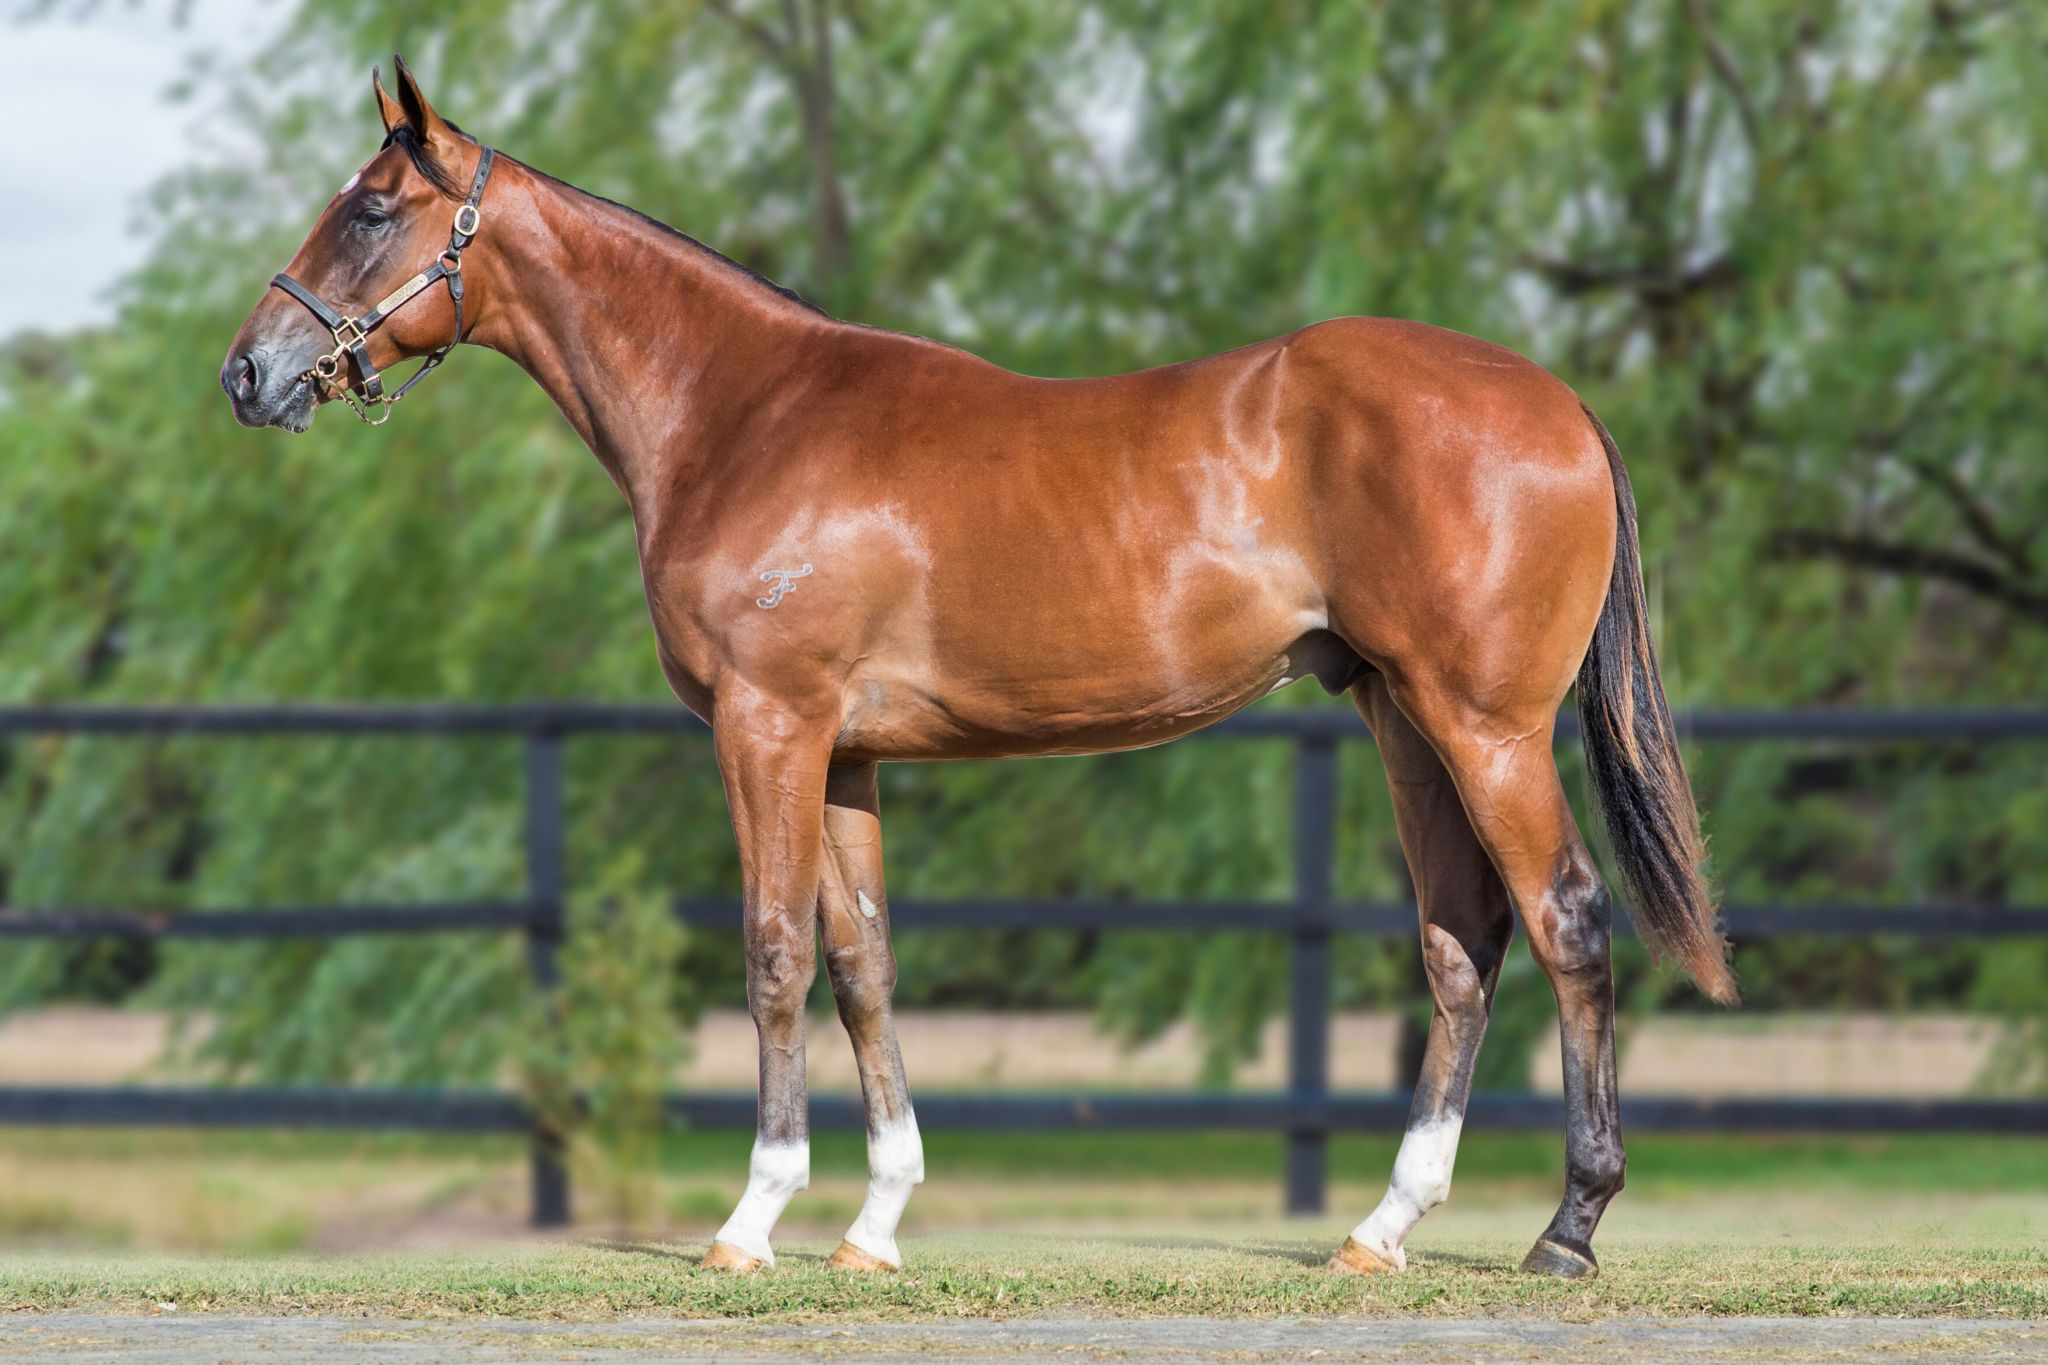 Inglis - 2019 Melbourne Premier Yearling Sale - Lot 773, Toronado